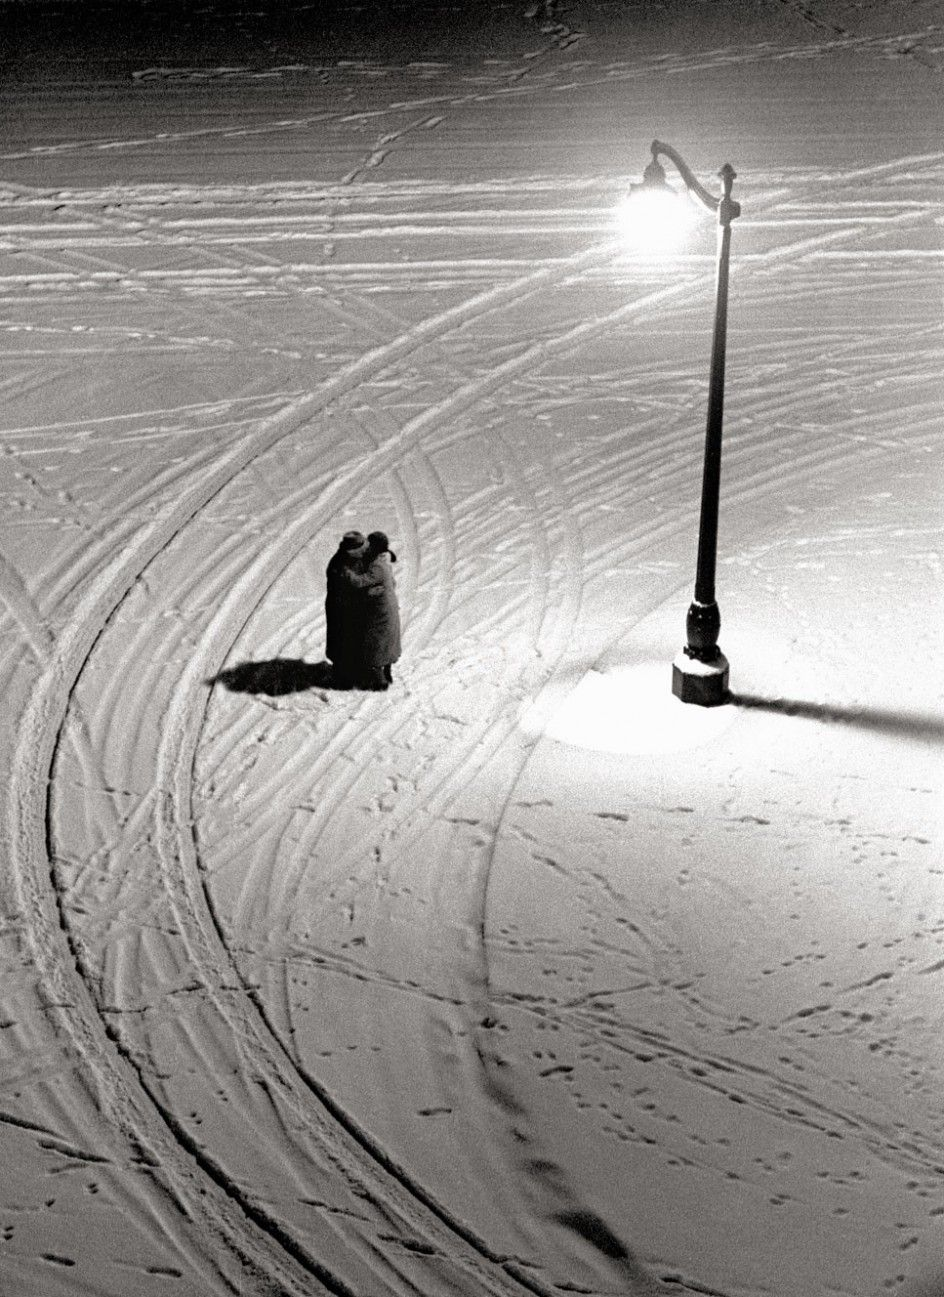 Fred Stein Archive - Embrace. High angle, nighttime view of a couple as they stand under a street light and embrace on a snowy street corner, Paris, France, 1934. °